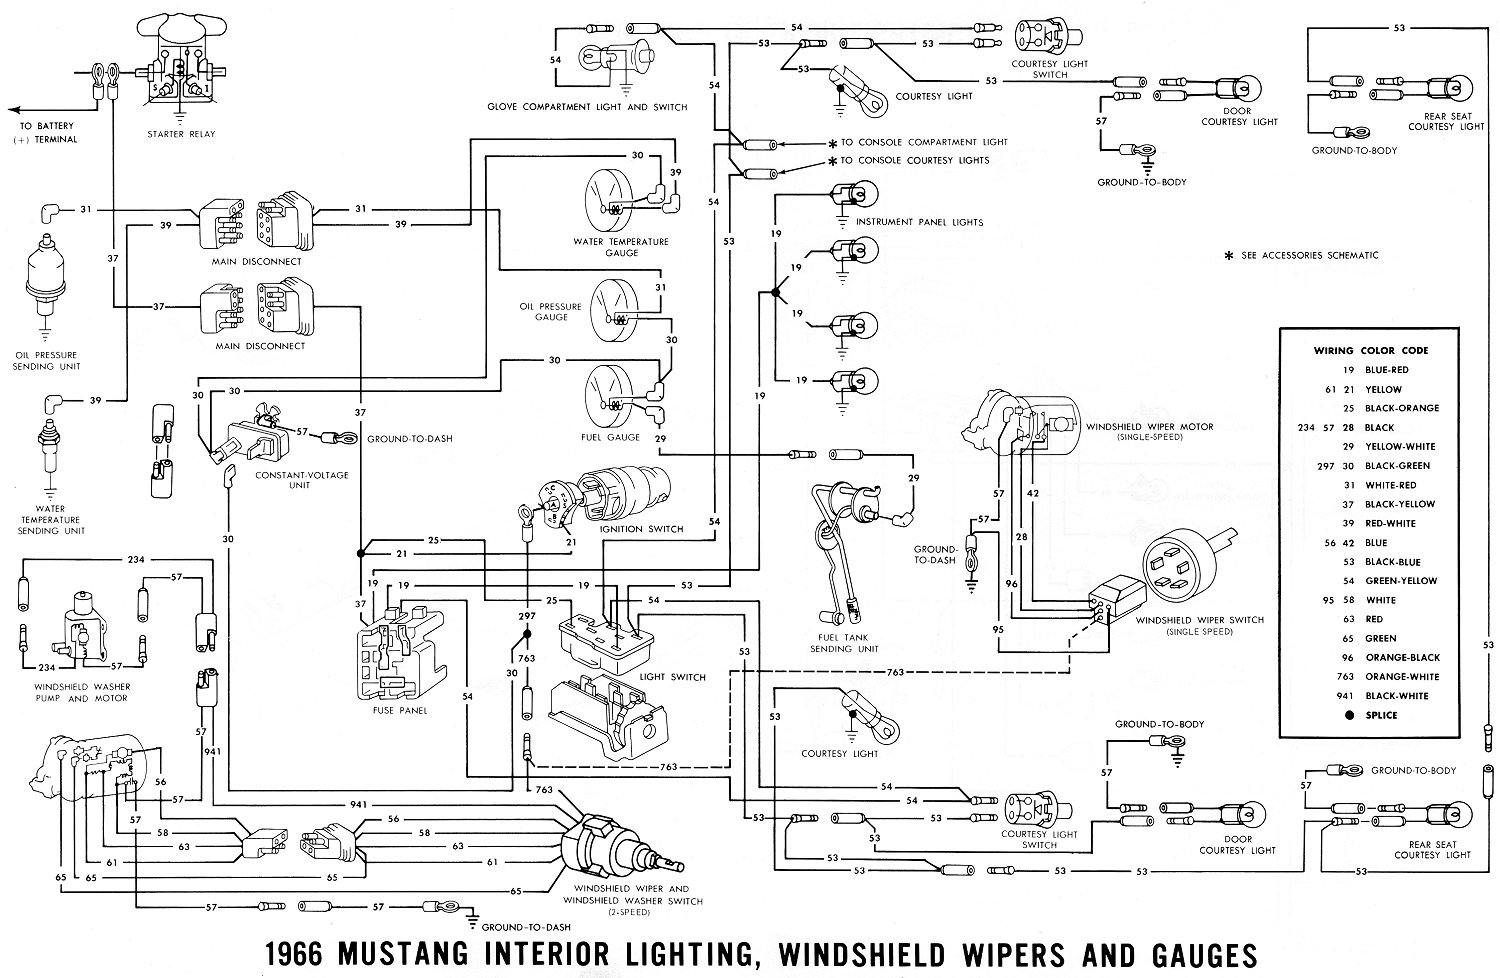 66inter1 1966 mustang wiring diagrams average joe restoration 65 mustang radio wiring diagram at soozxer.org